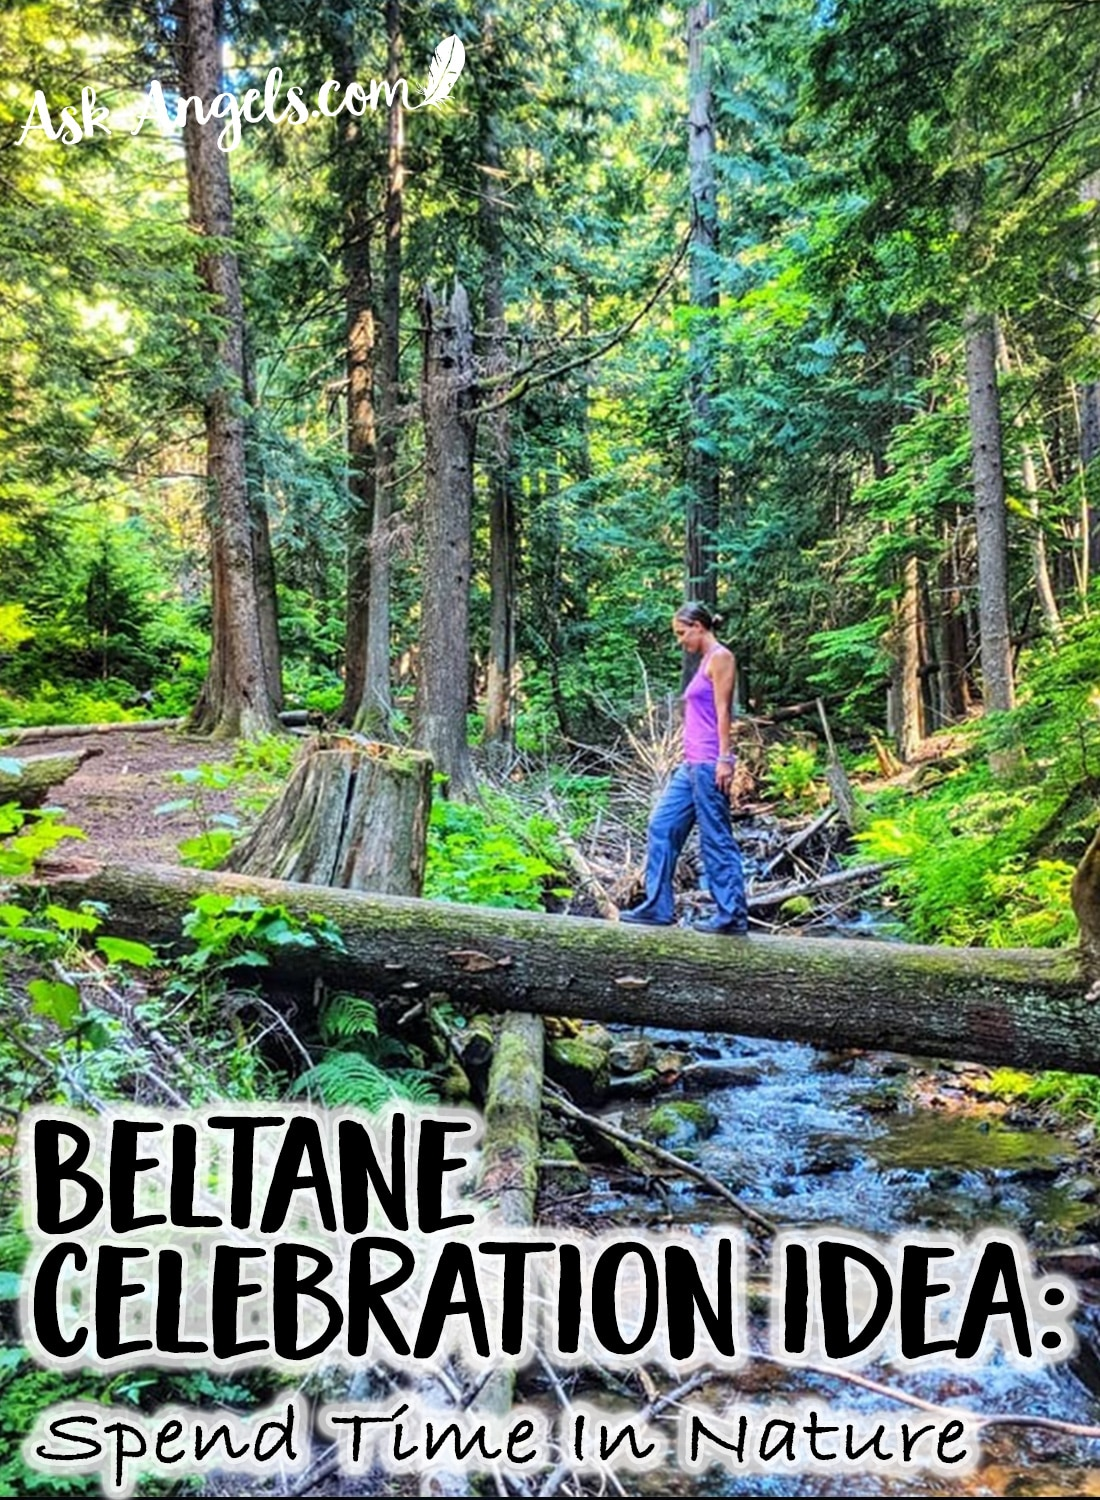 Beltane Celebration Idea - Spend Time In Nature